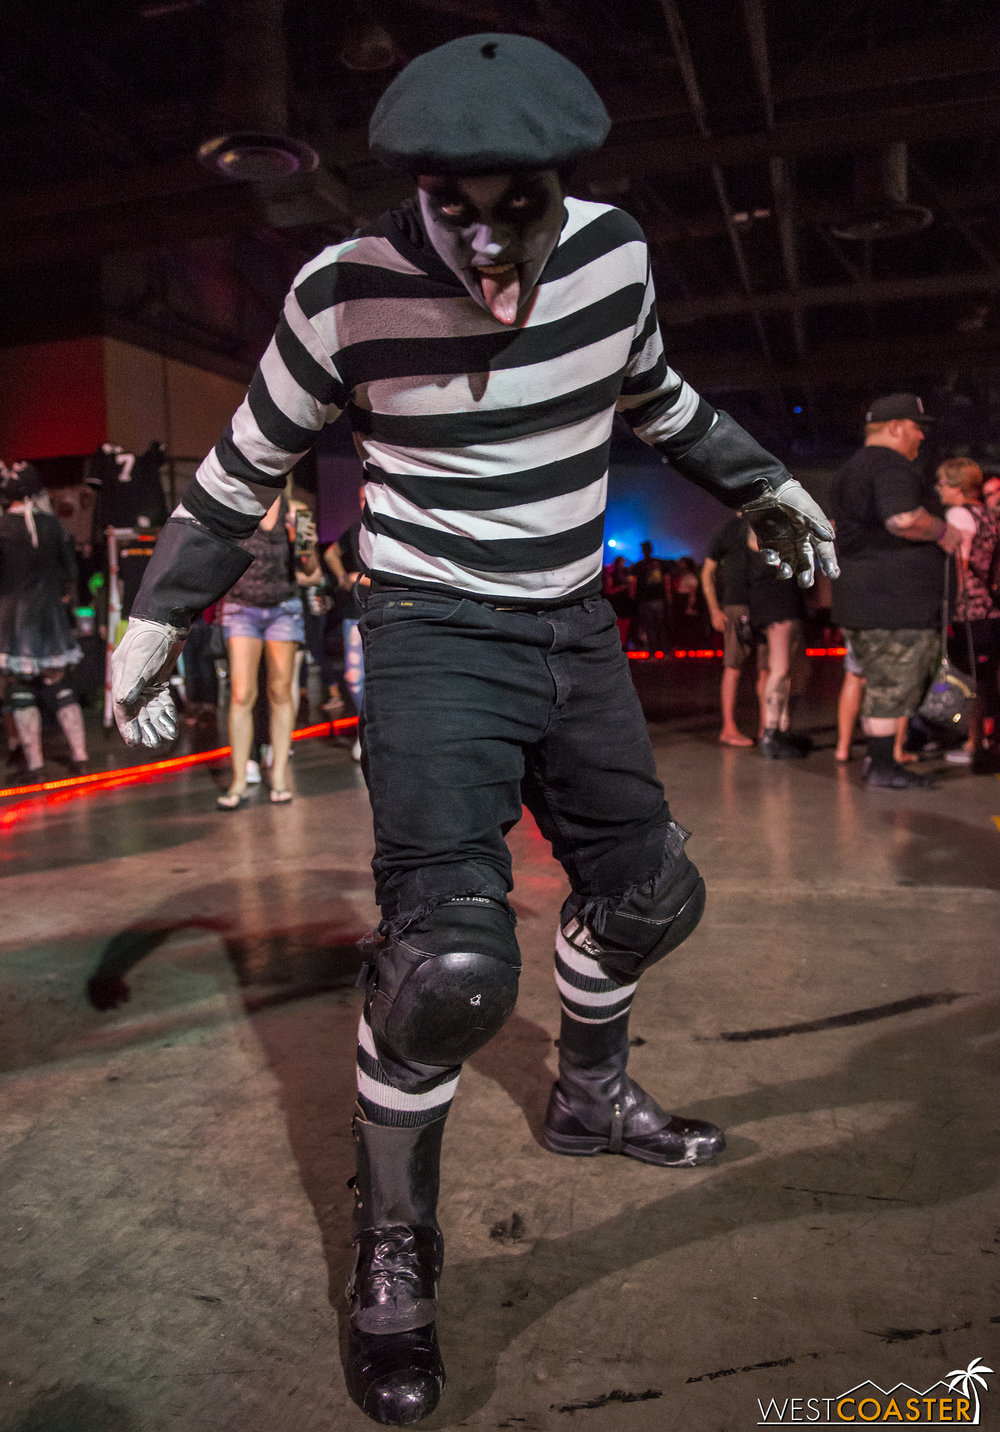 He may look like a harmless mime, but Seabass has some tricks up his sleeve.